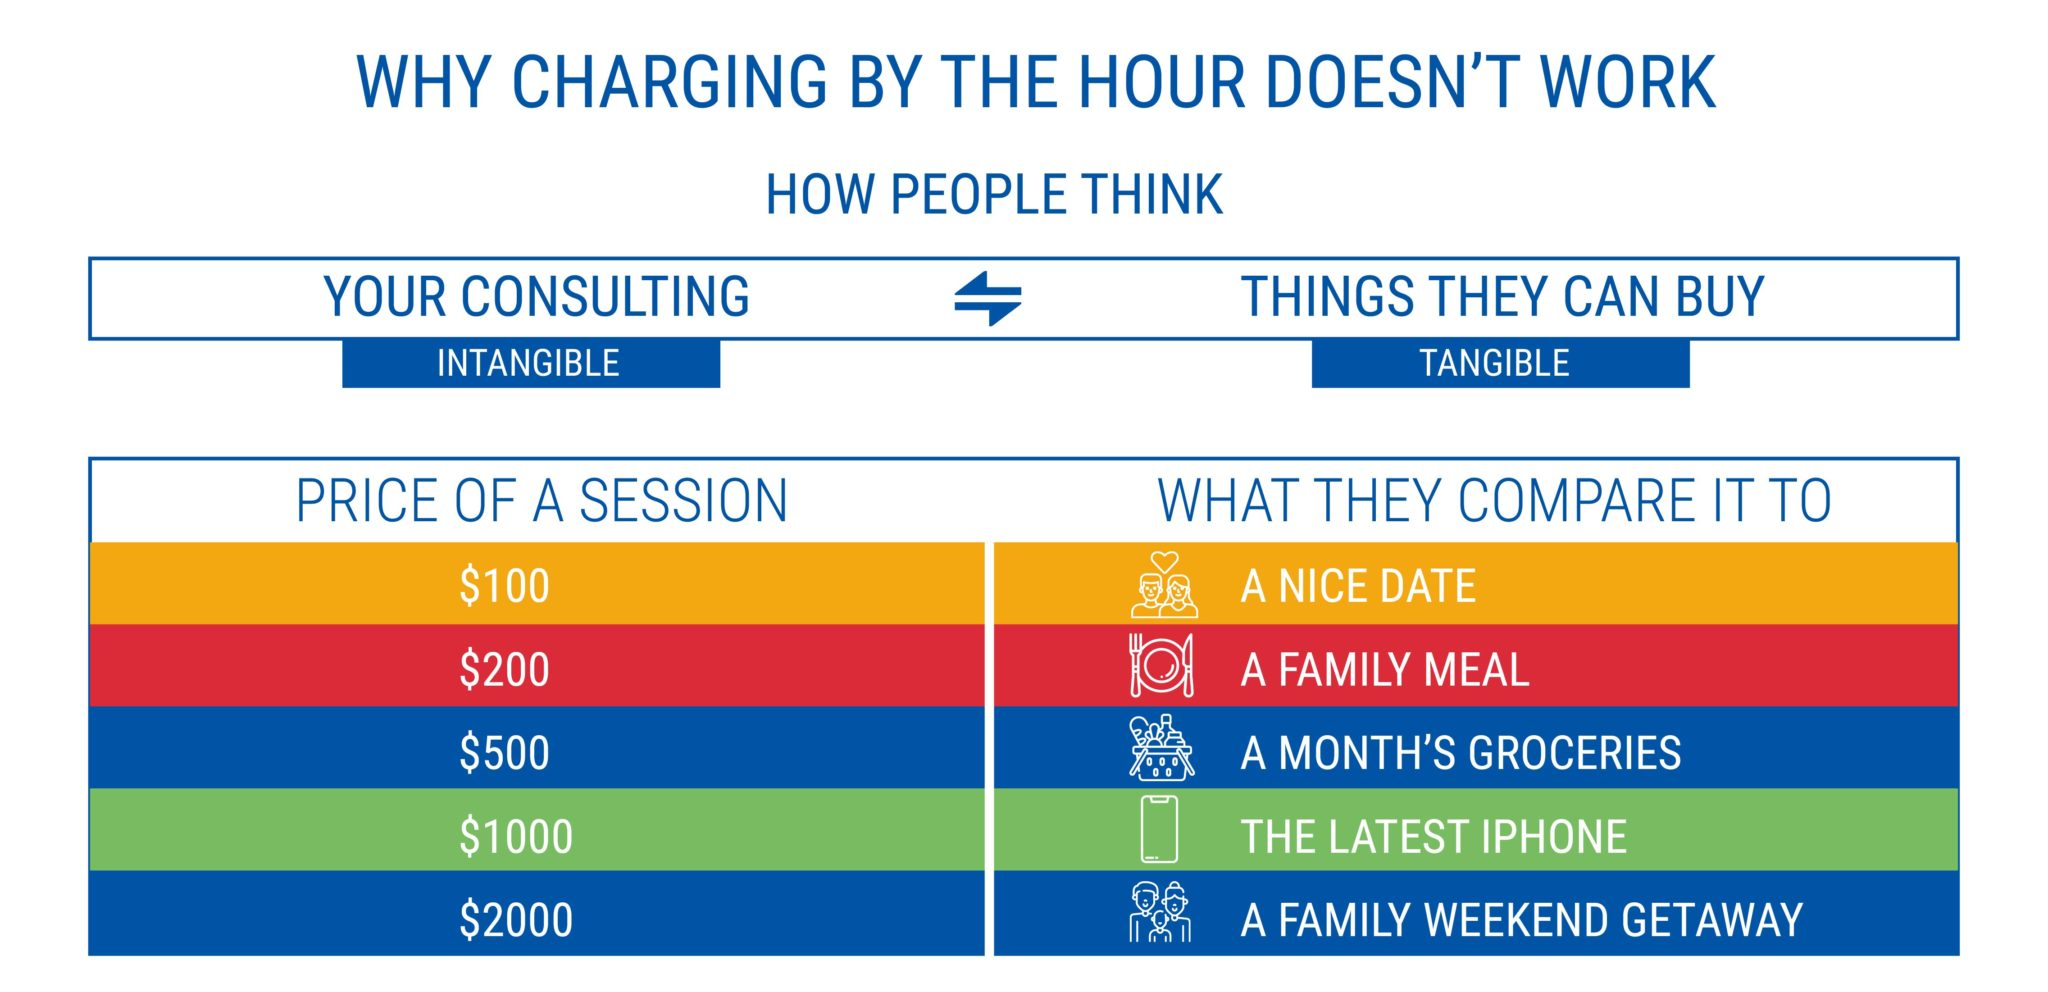 WHY CHARGING BY THE HOUR DOESN'T WORK